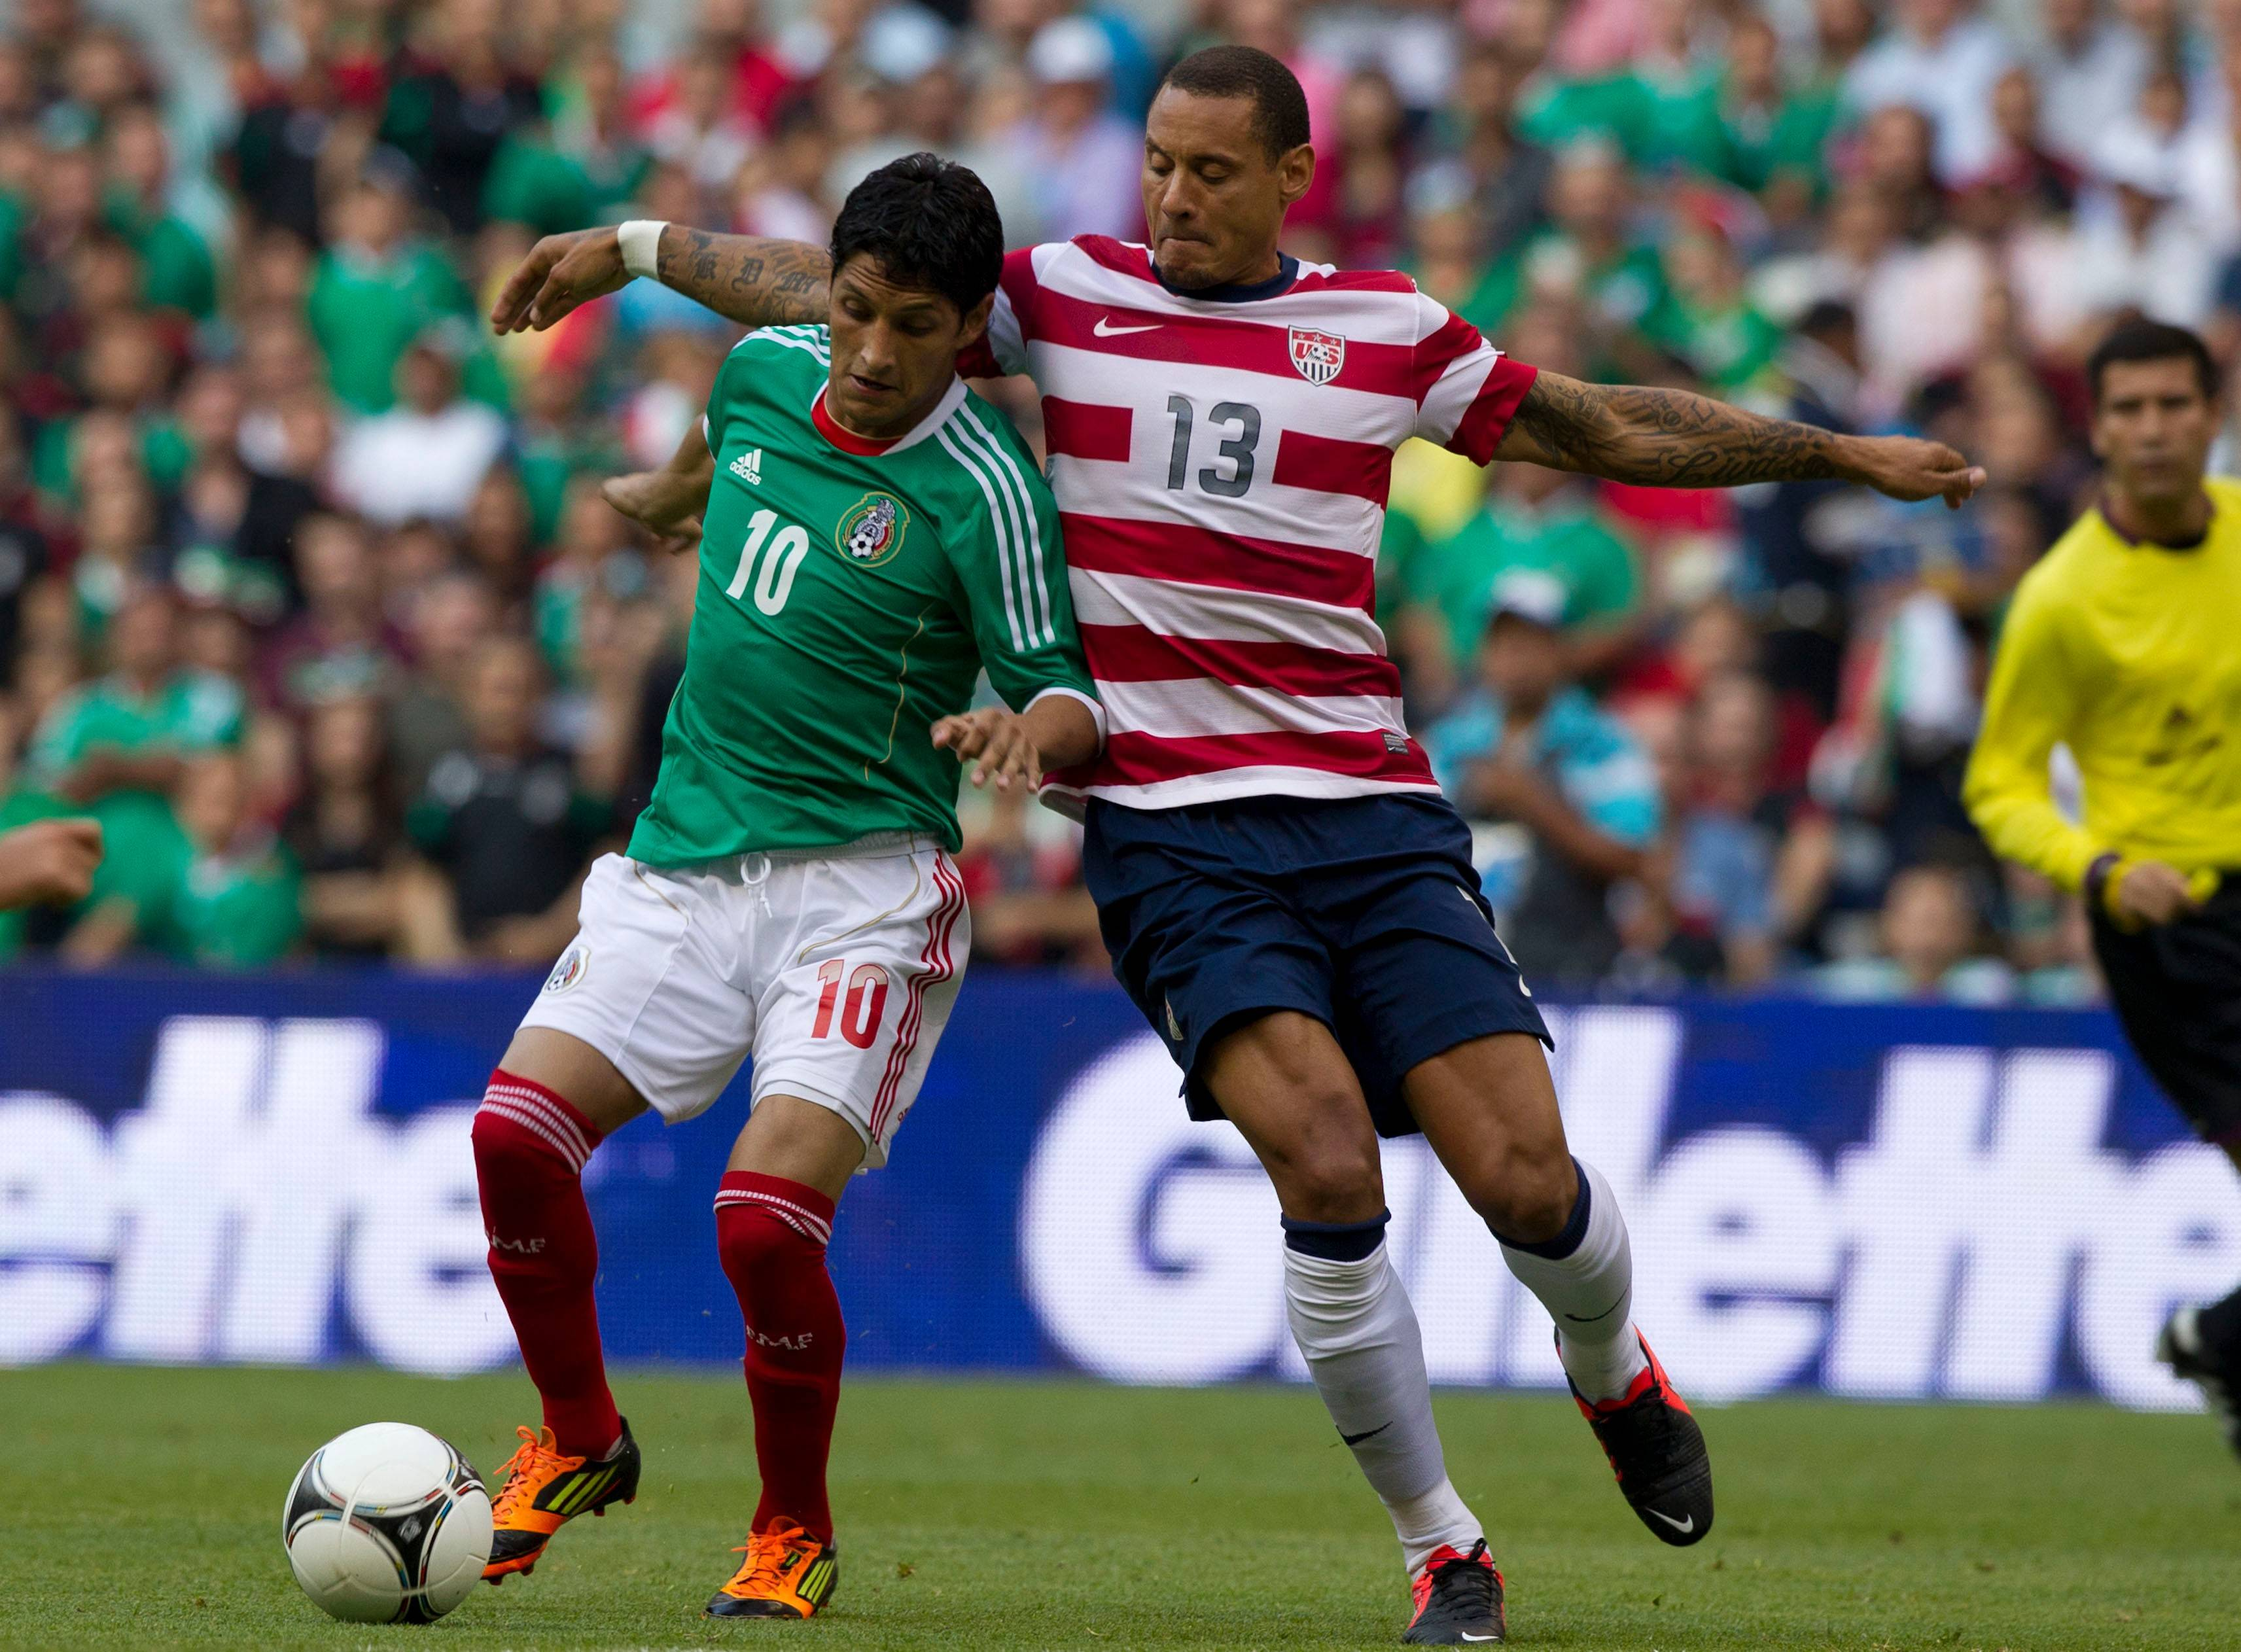 Mexico's Angel Reyna, left, and U.S. Jermaine Jones battle for the ball during a friendly soccer match Aug. 15 in Mexico City.